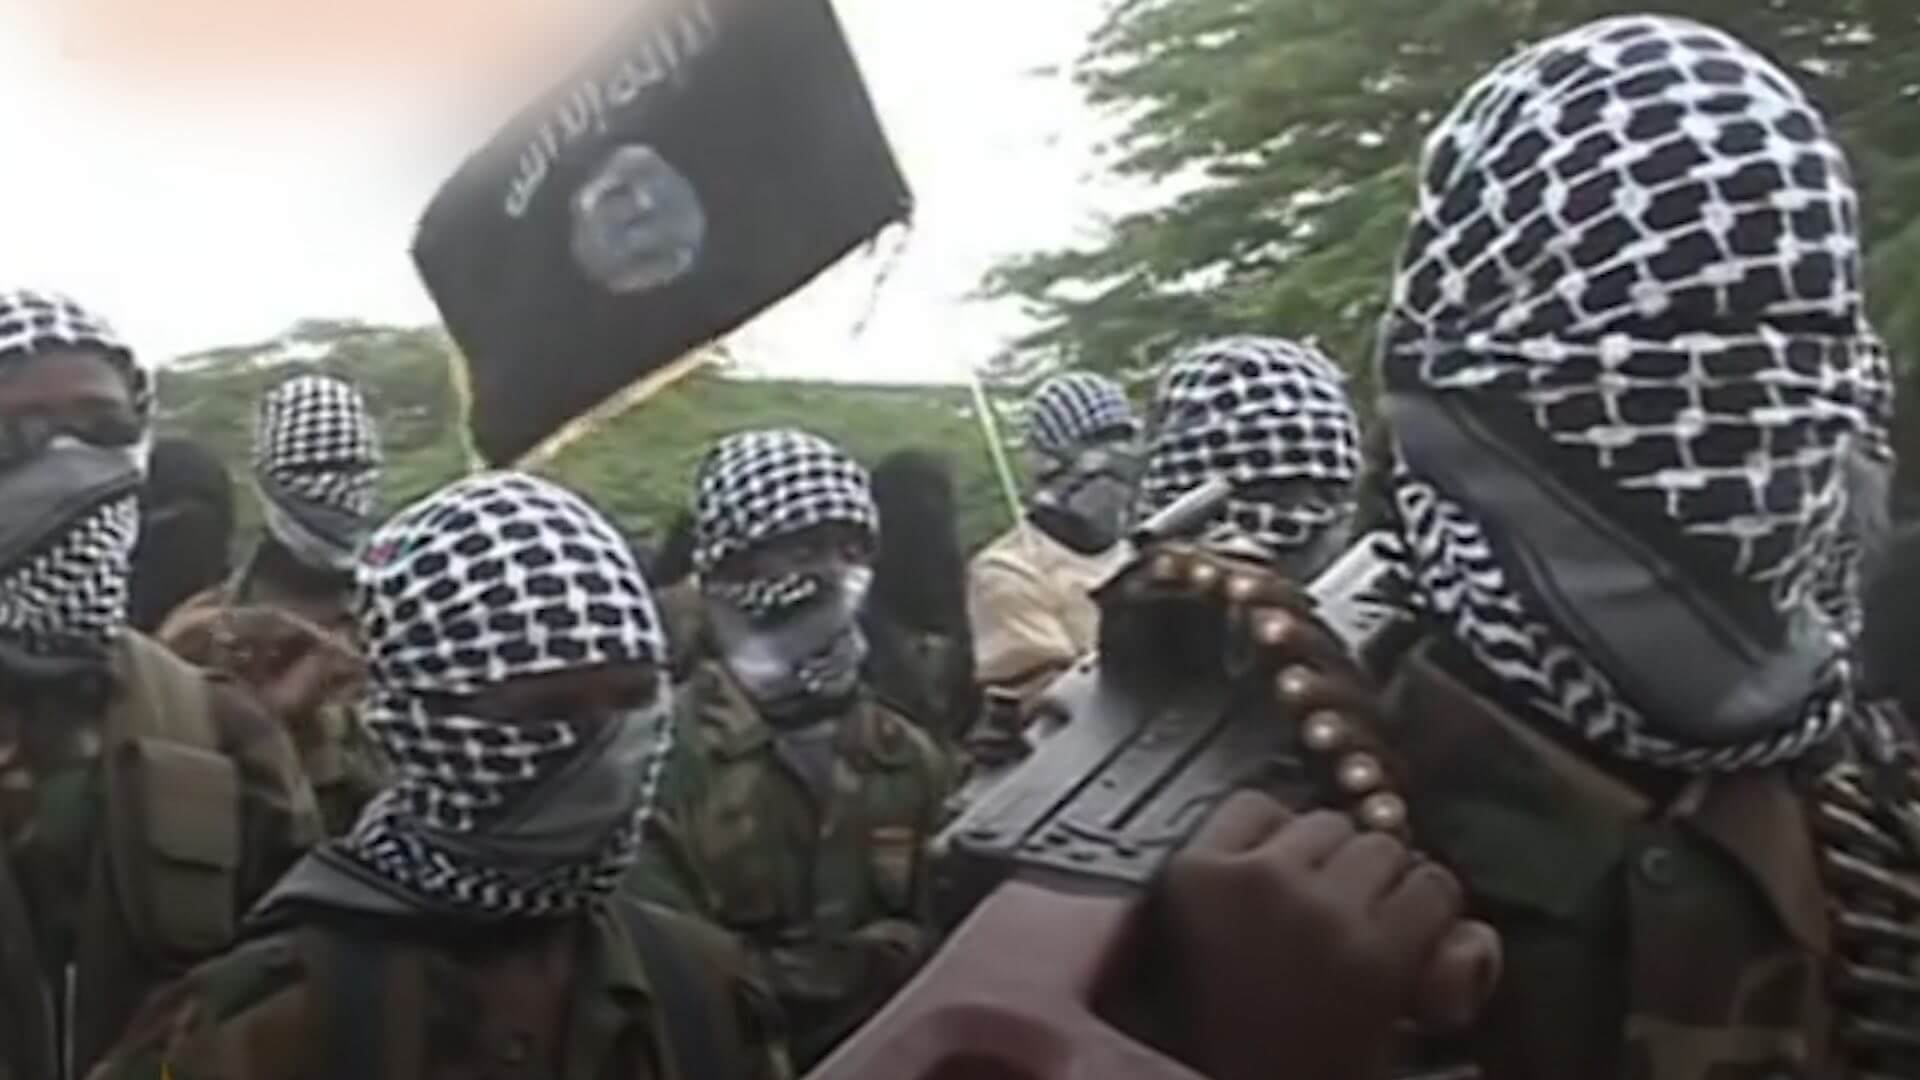 If You Come To Al Shabaab, Your Sins Will Be Forgiven